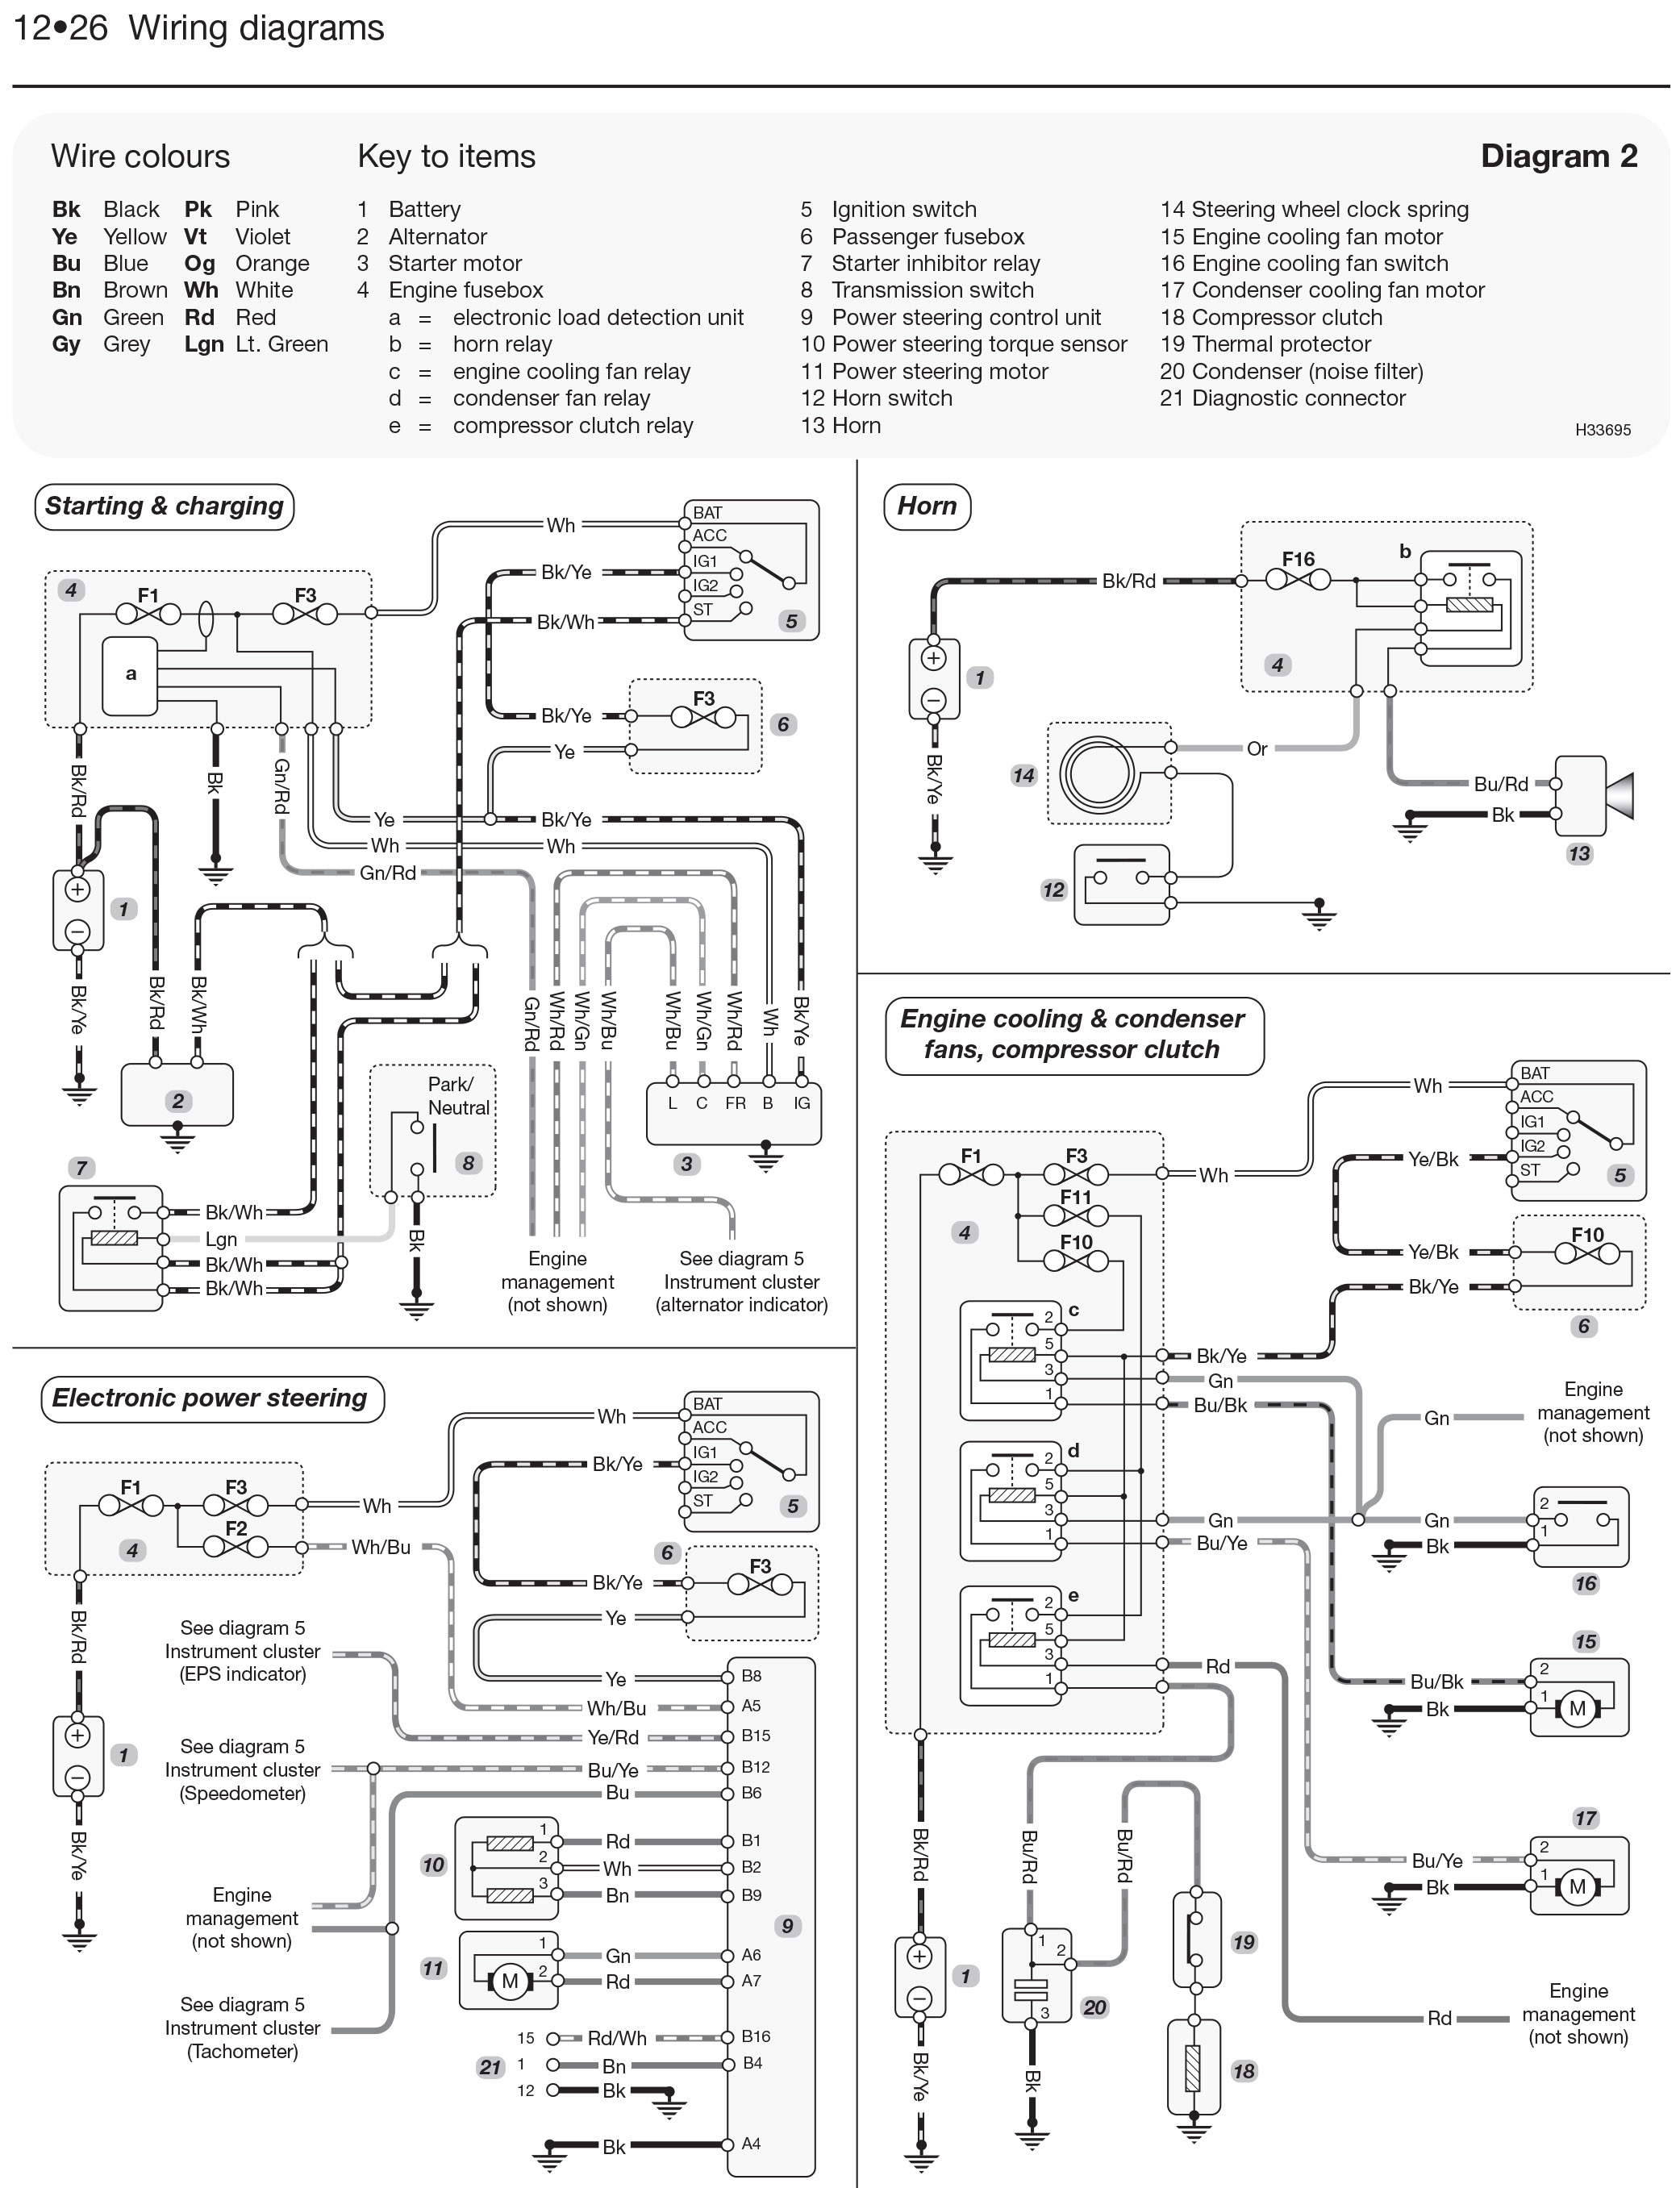 honda jazz wiring diagram pdf honda jazz (02 - 08) haynes repair manual | haynes publishing honda jazz wiring diagram